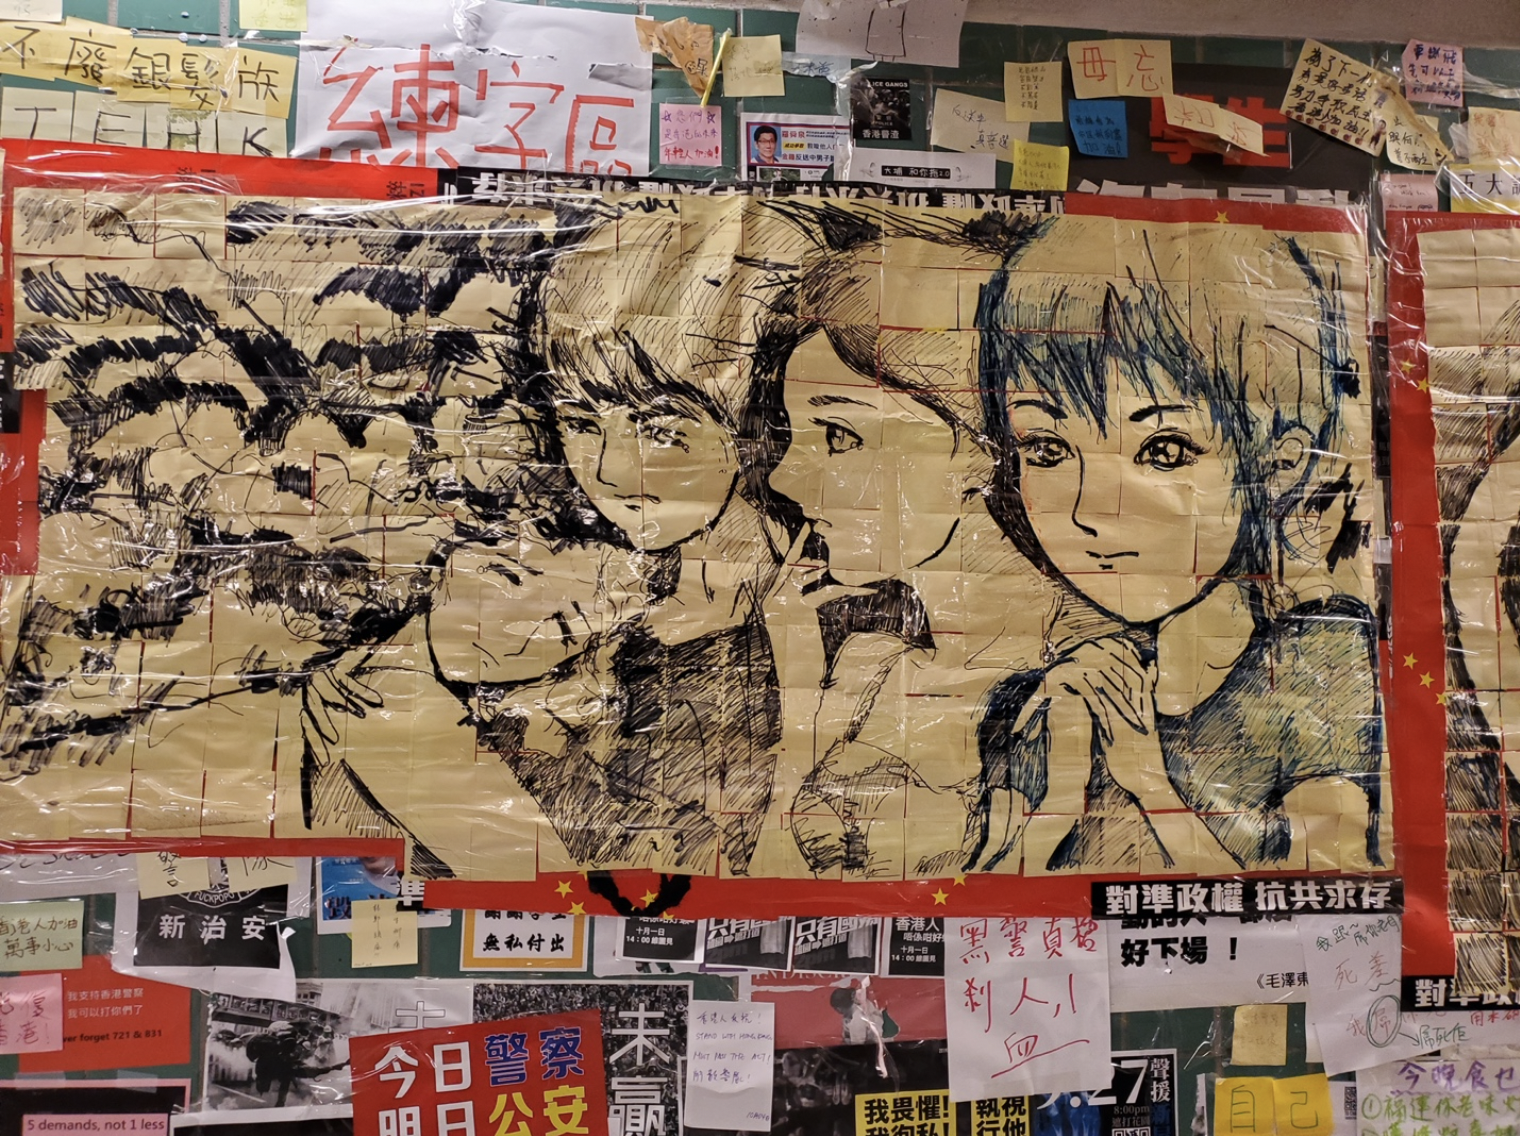 Poster made of post-it notes and shows four characters in Japanese-style animation.